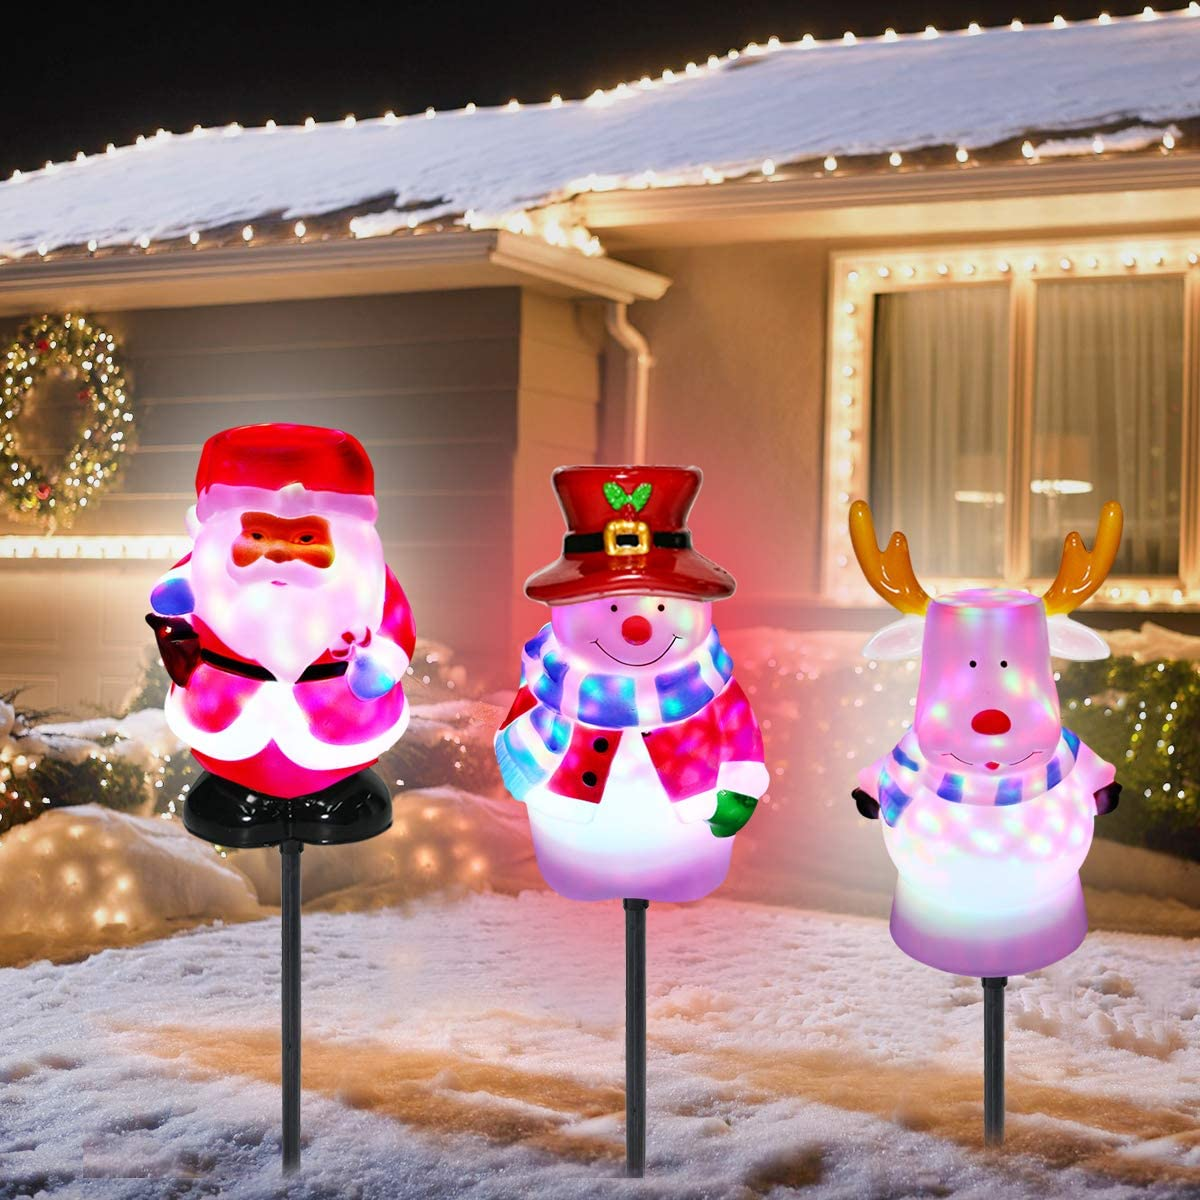 Christmas Pathway Lights Outdoor Decorations - 3 Pack Waterproof Landscape LED Lights with Santa/Snowman/Deer for Garden Patio Yard Lawn Pathway Christmas Decorations